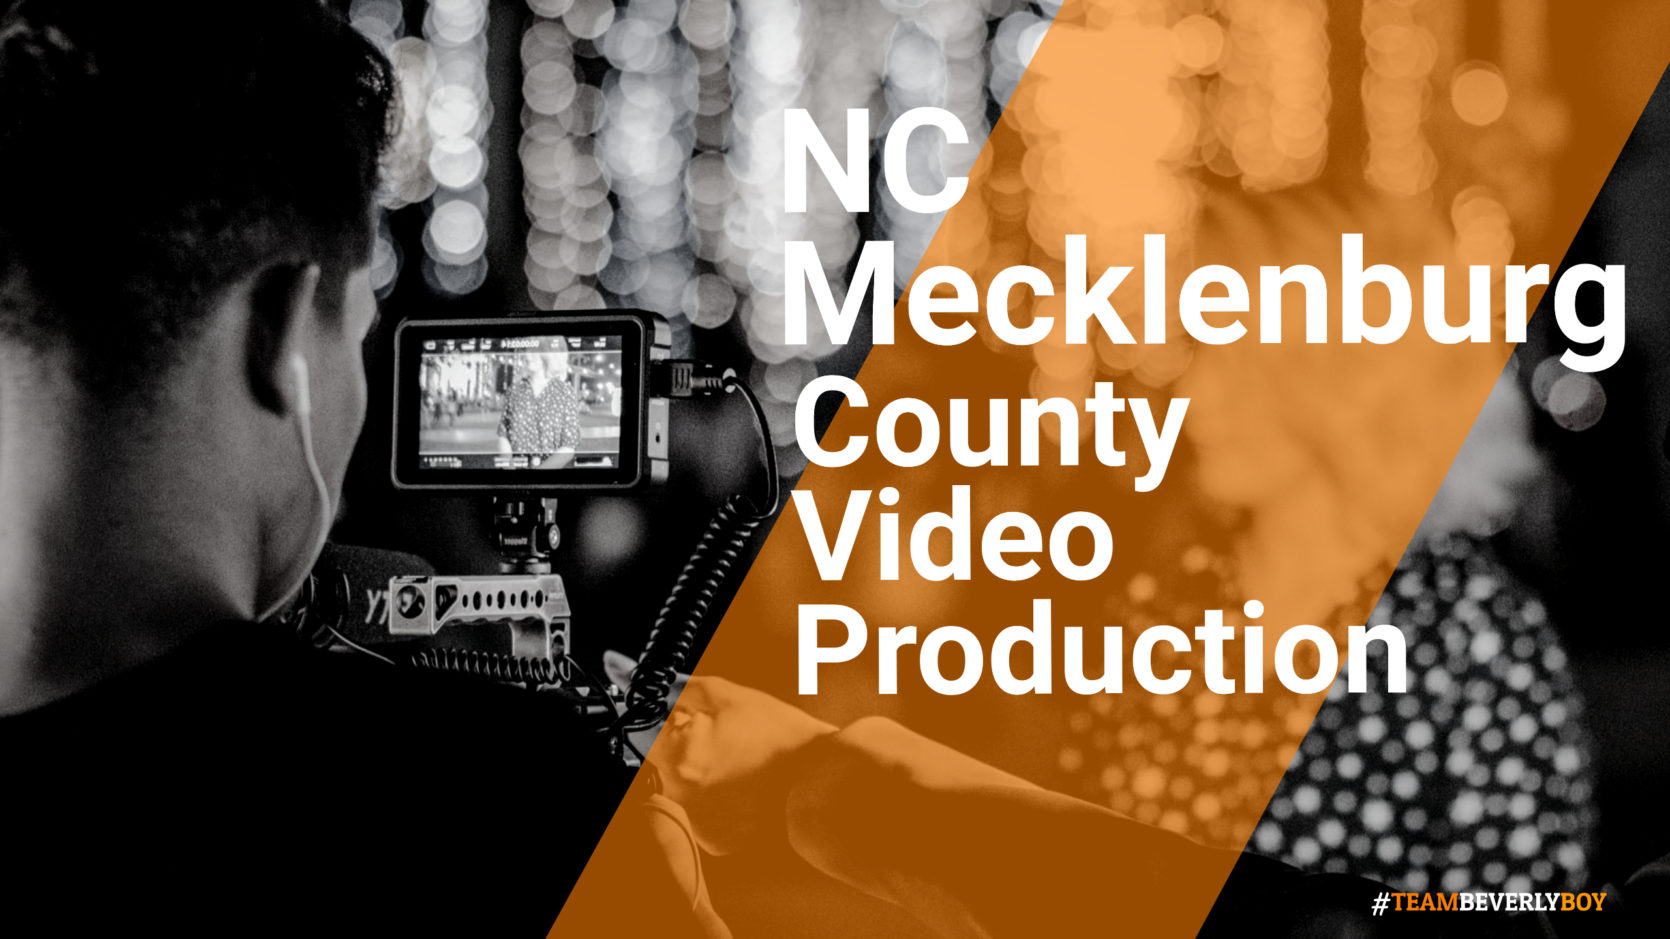 Mecklenburg county NC video production